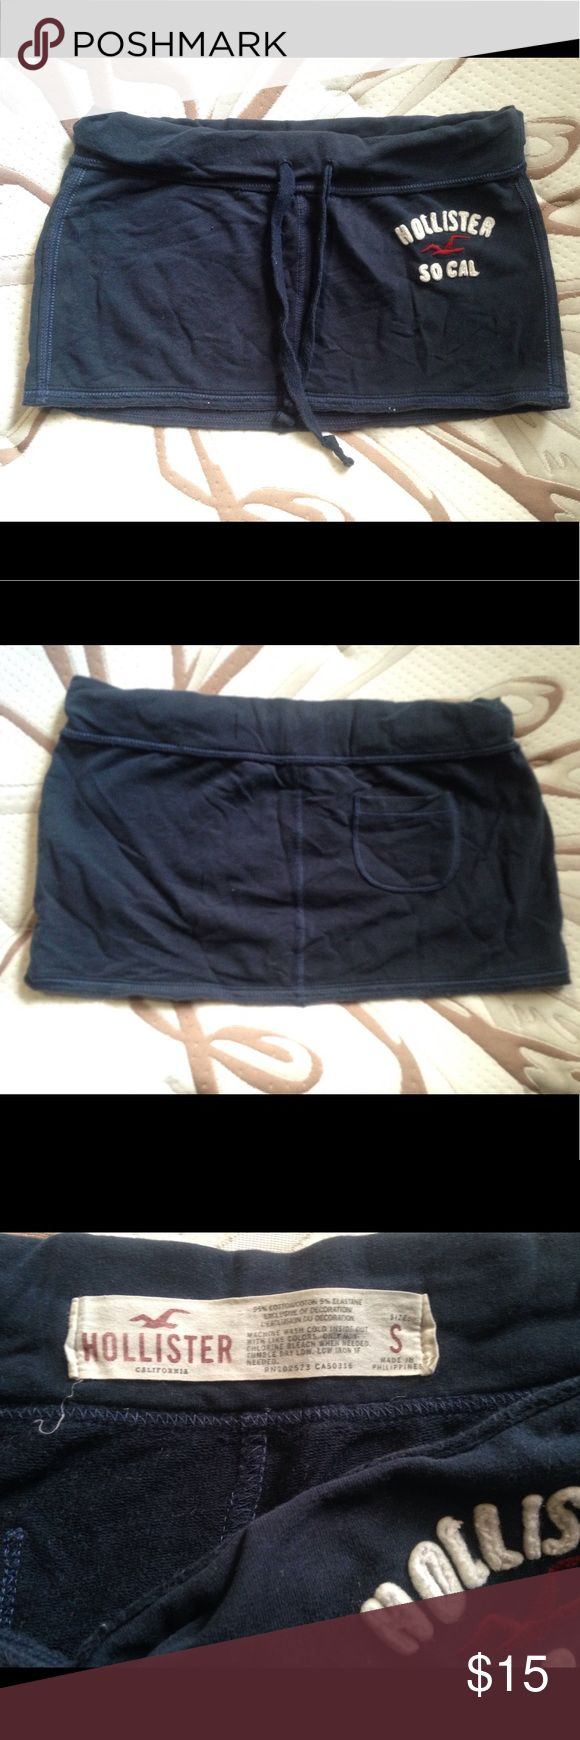 Hollister skirt Incredibly soft drawstring skirt. Great condition. Small pocket on the back. This can easily become you most favorite shirt ever ! Hollister Skirts Mini